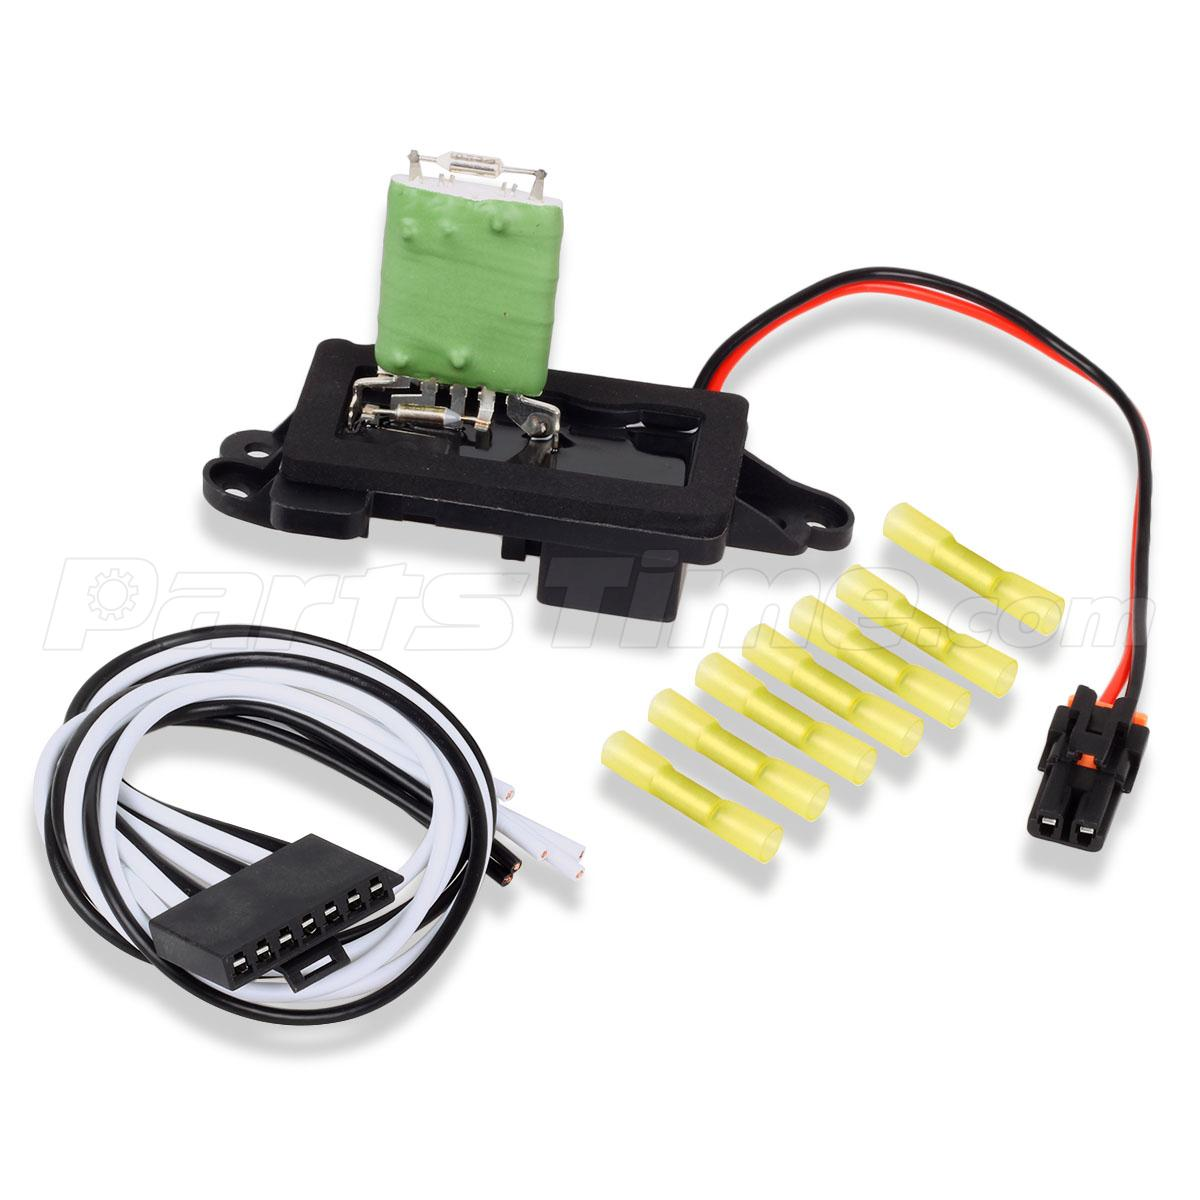 145392 9?rn=8485735 89019088 heater blower motor resistor for cadillac chevy gmc w Cadillac 4.5 V8 at gsmx.co